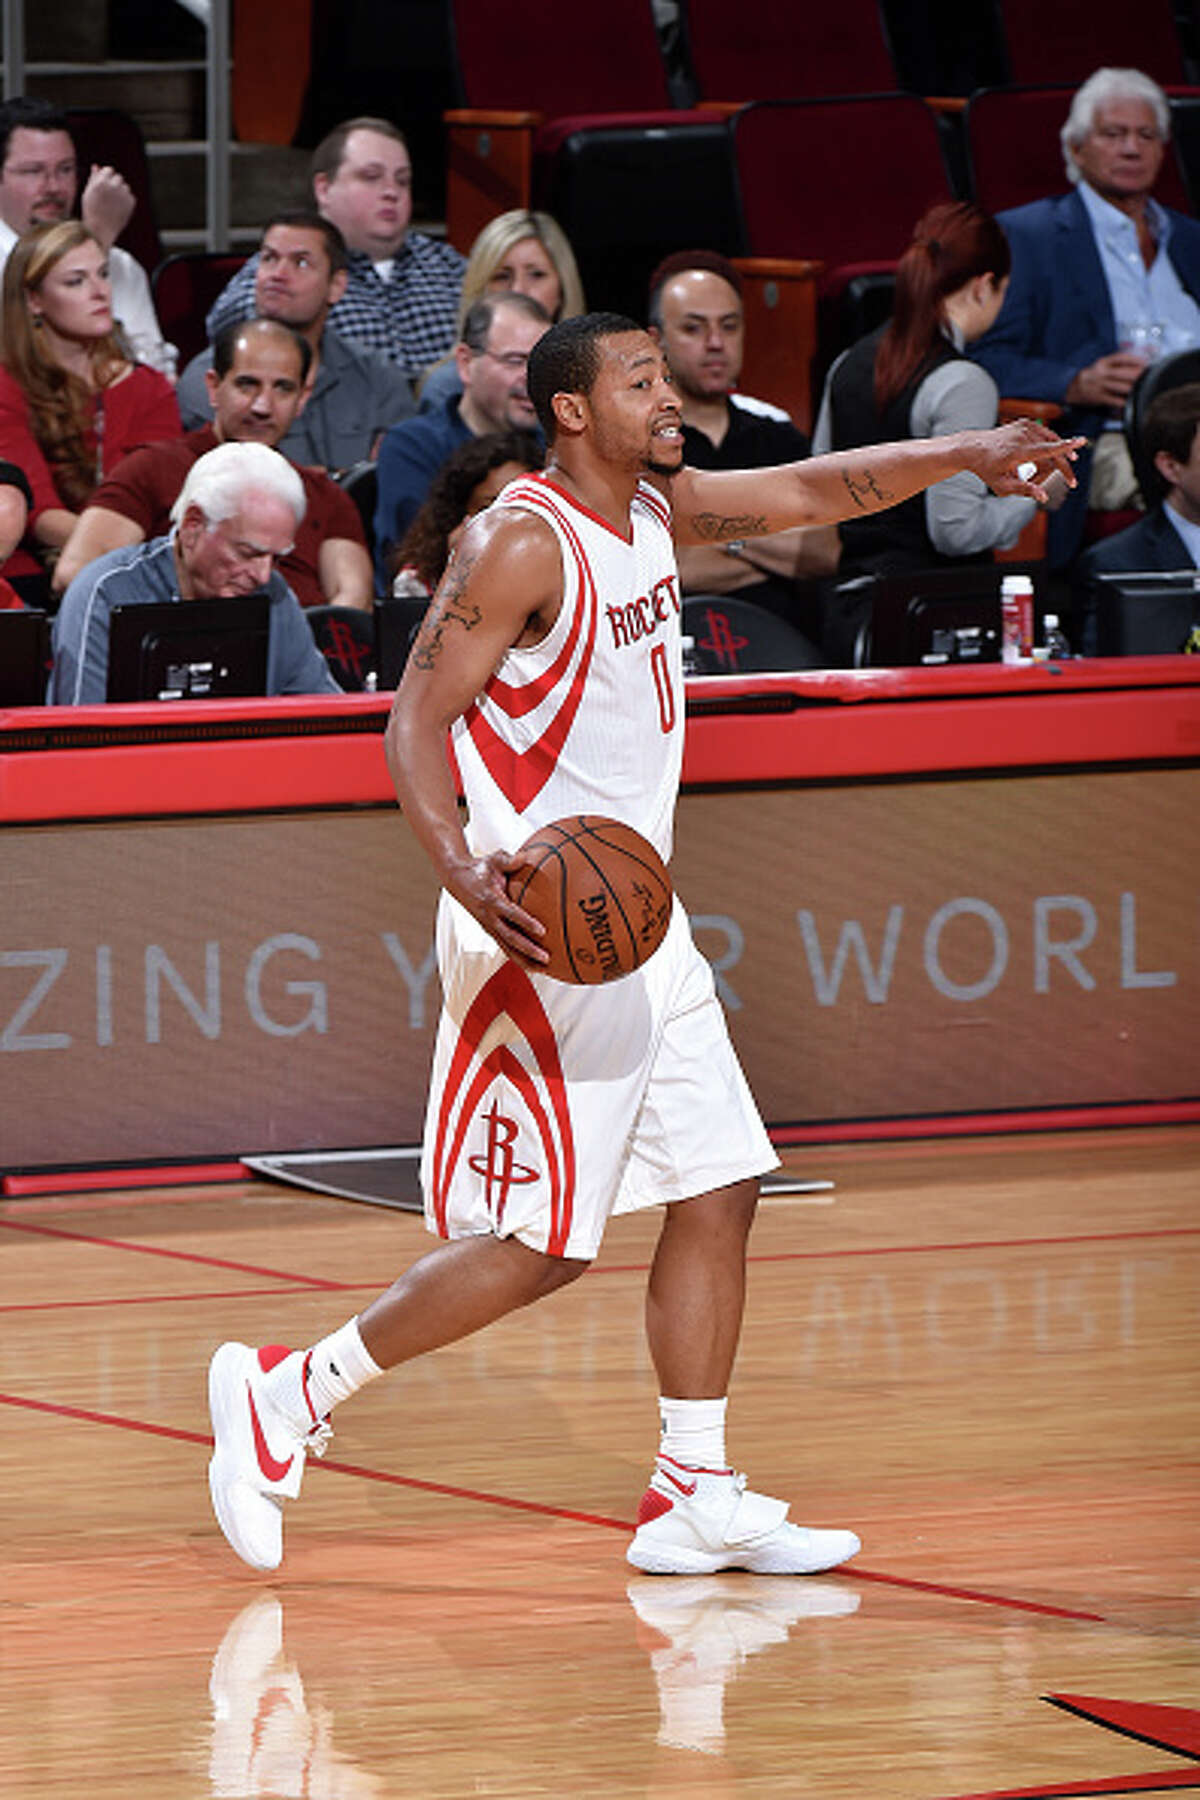 HOUSTON, TX - MARCH 14: Andrew Goudelock #0 of the Houston Rockets handles the ball during the game against the Memphis Grizzlies on March 14, 2016 at the Toyota Center in Houston, Texas. NOTE TO USER: User expressly acknowledges and agrees that, by downloading and or using this photograph, User is consenting to the terms and conditions of the Getty Images License Agreement. Mandatory Copyright Notice: Copyright 2016 NBAE (Photo by Bill Baptist/NBAE via Getty Images)